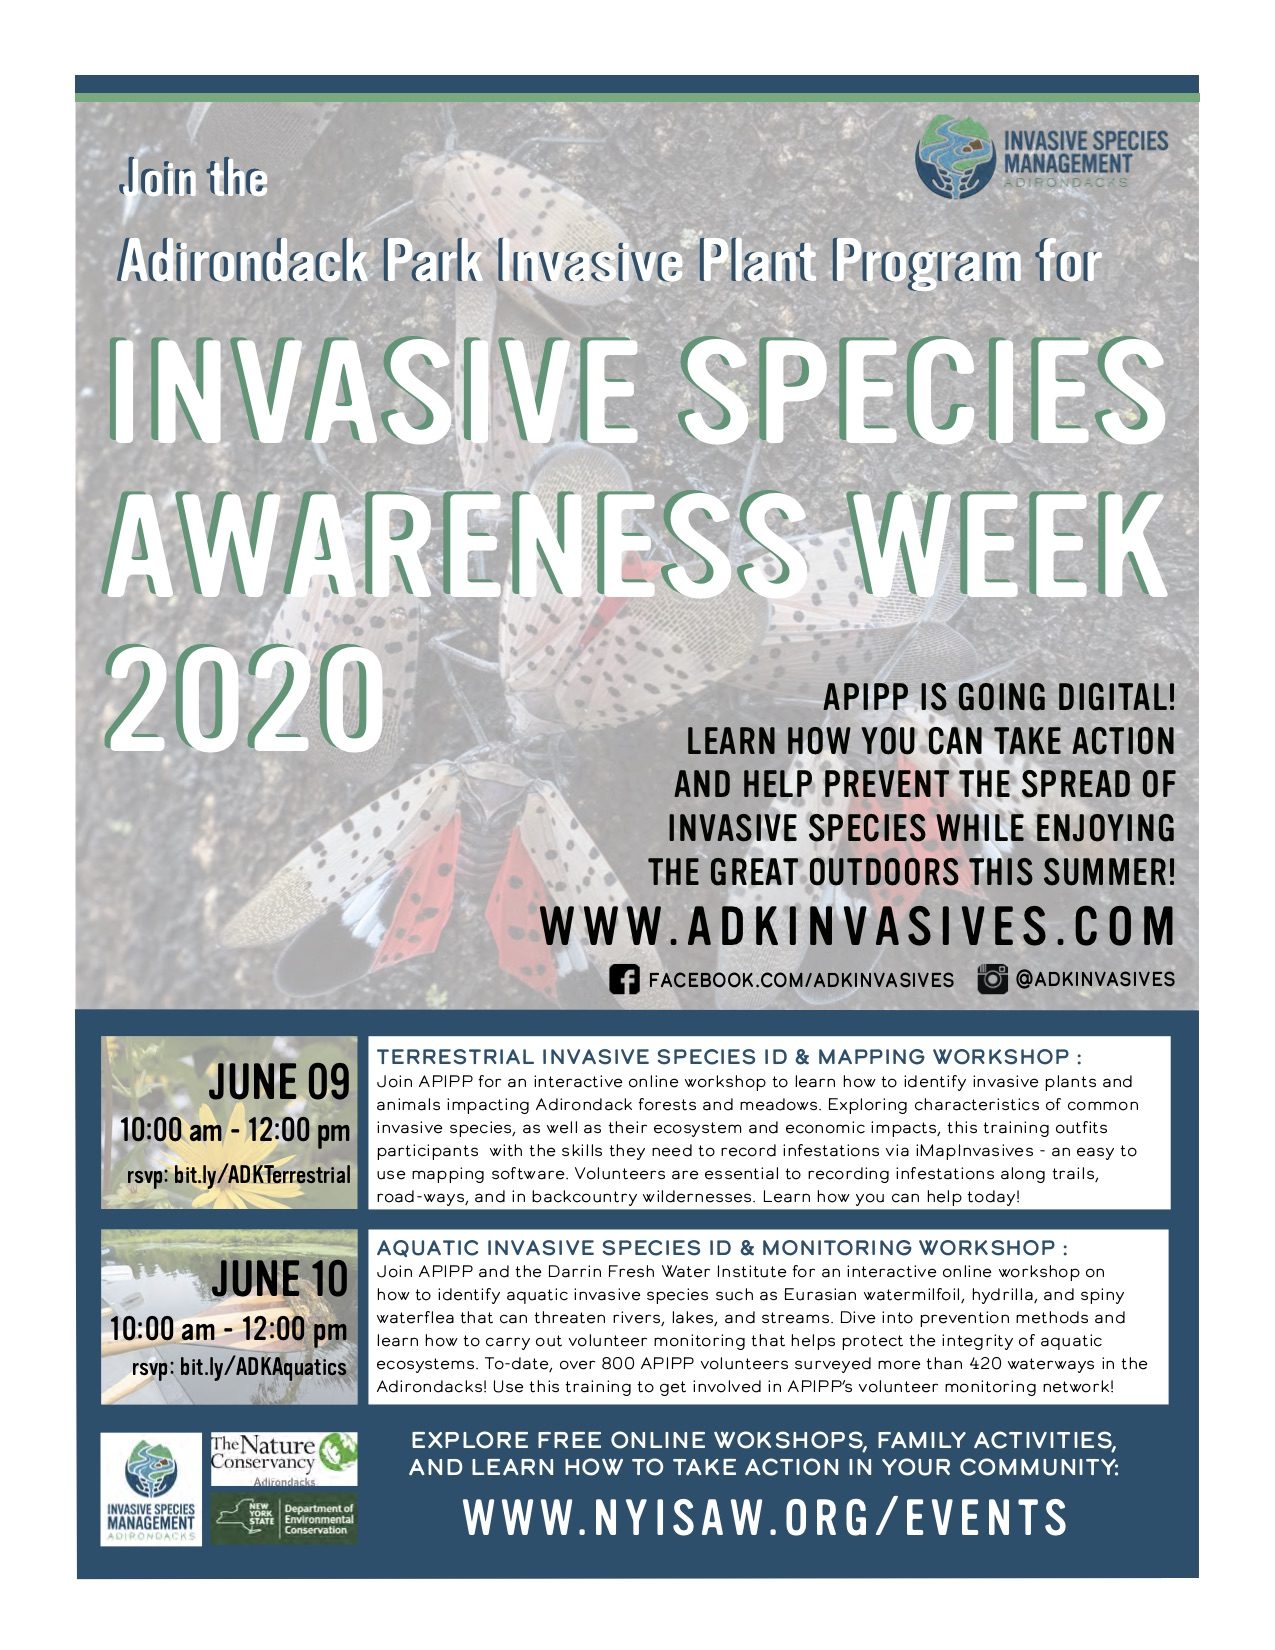 Invasive Species Awareness Week June 7-13th 2020